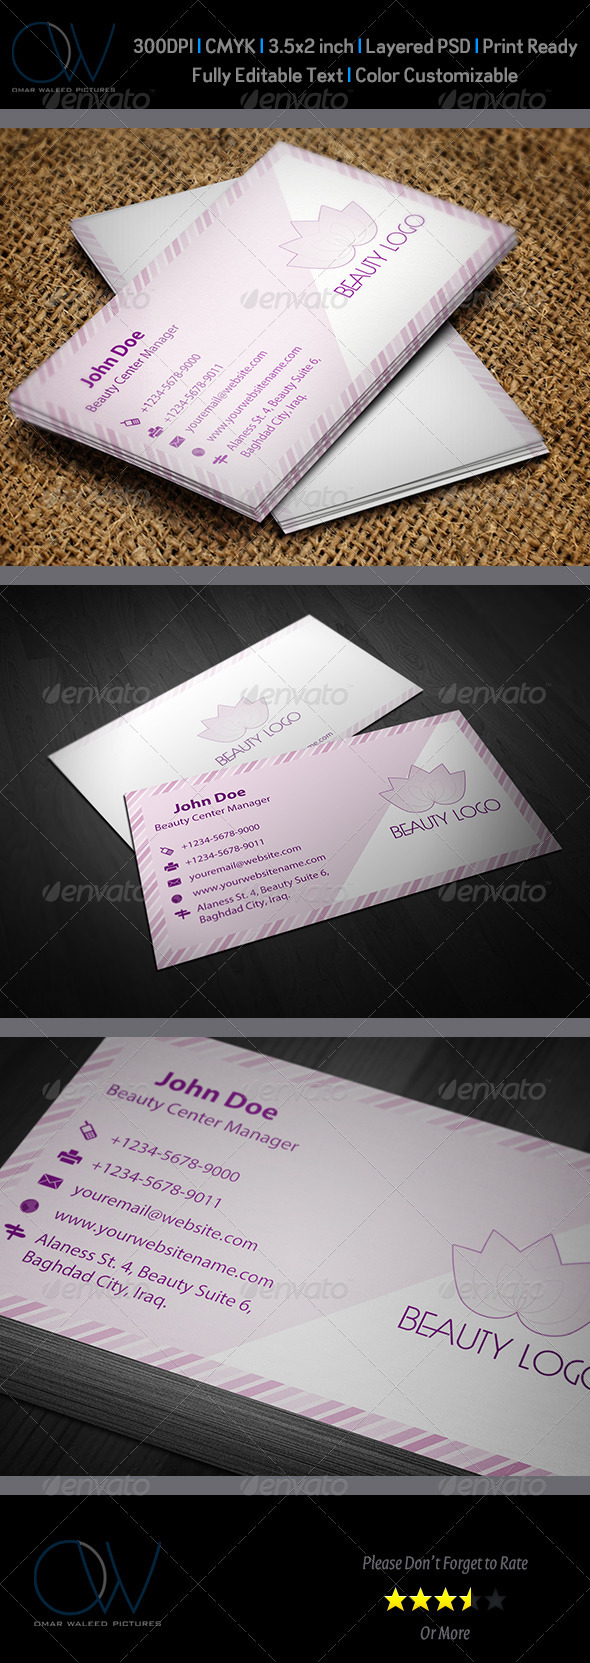 Beauty Business Card - Business Cards Print Templates